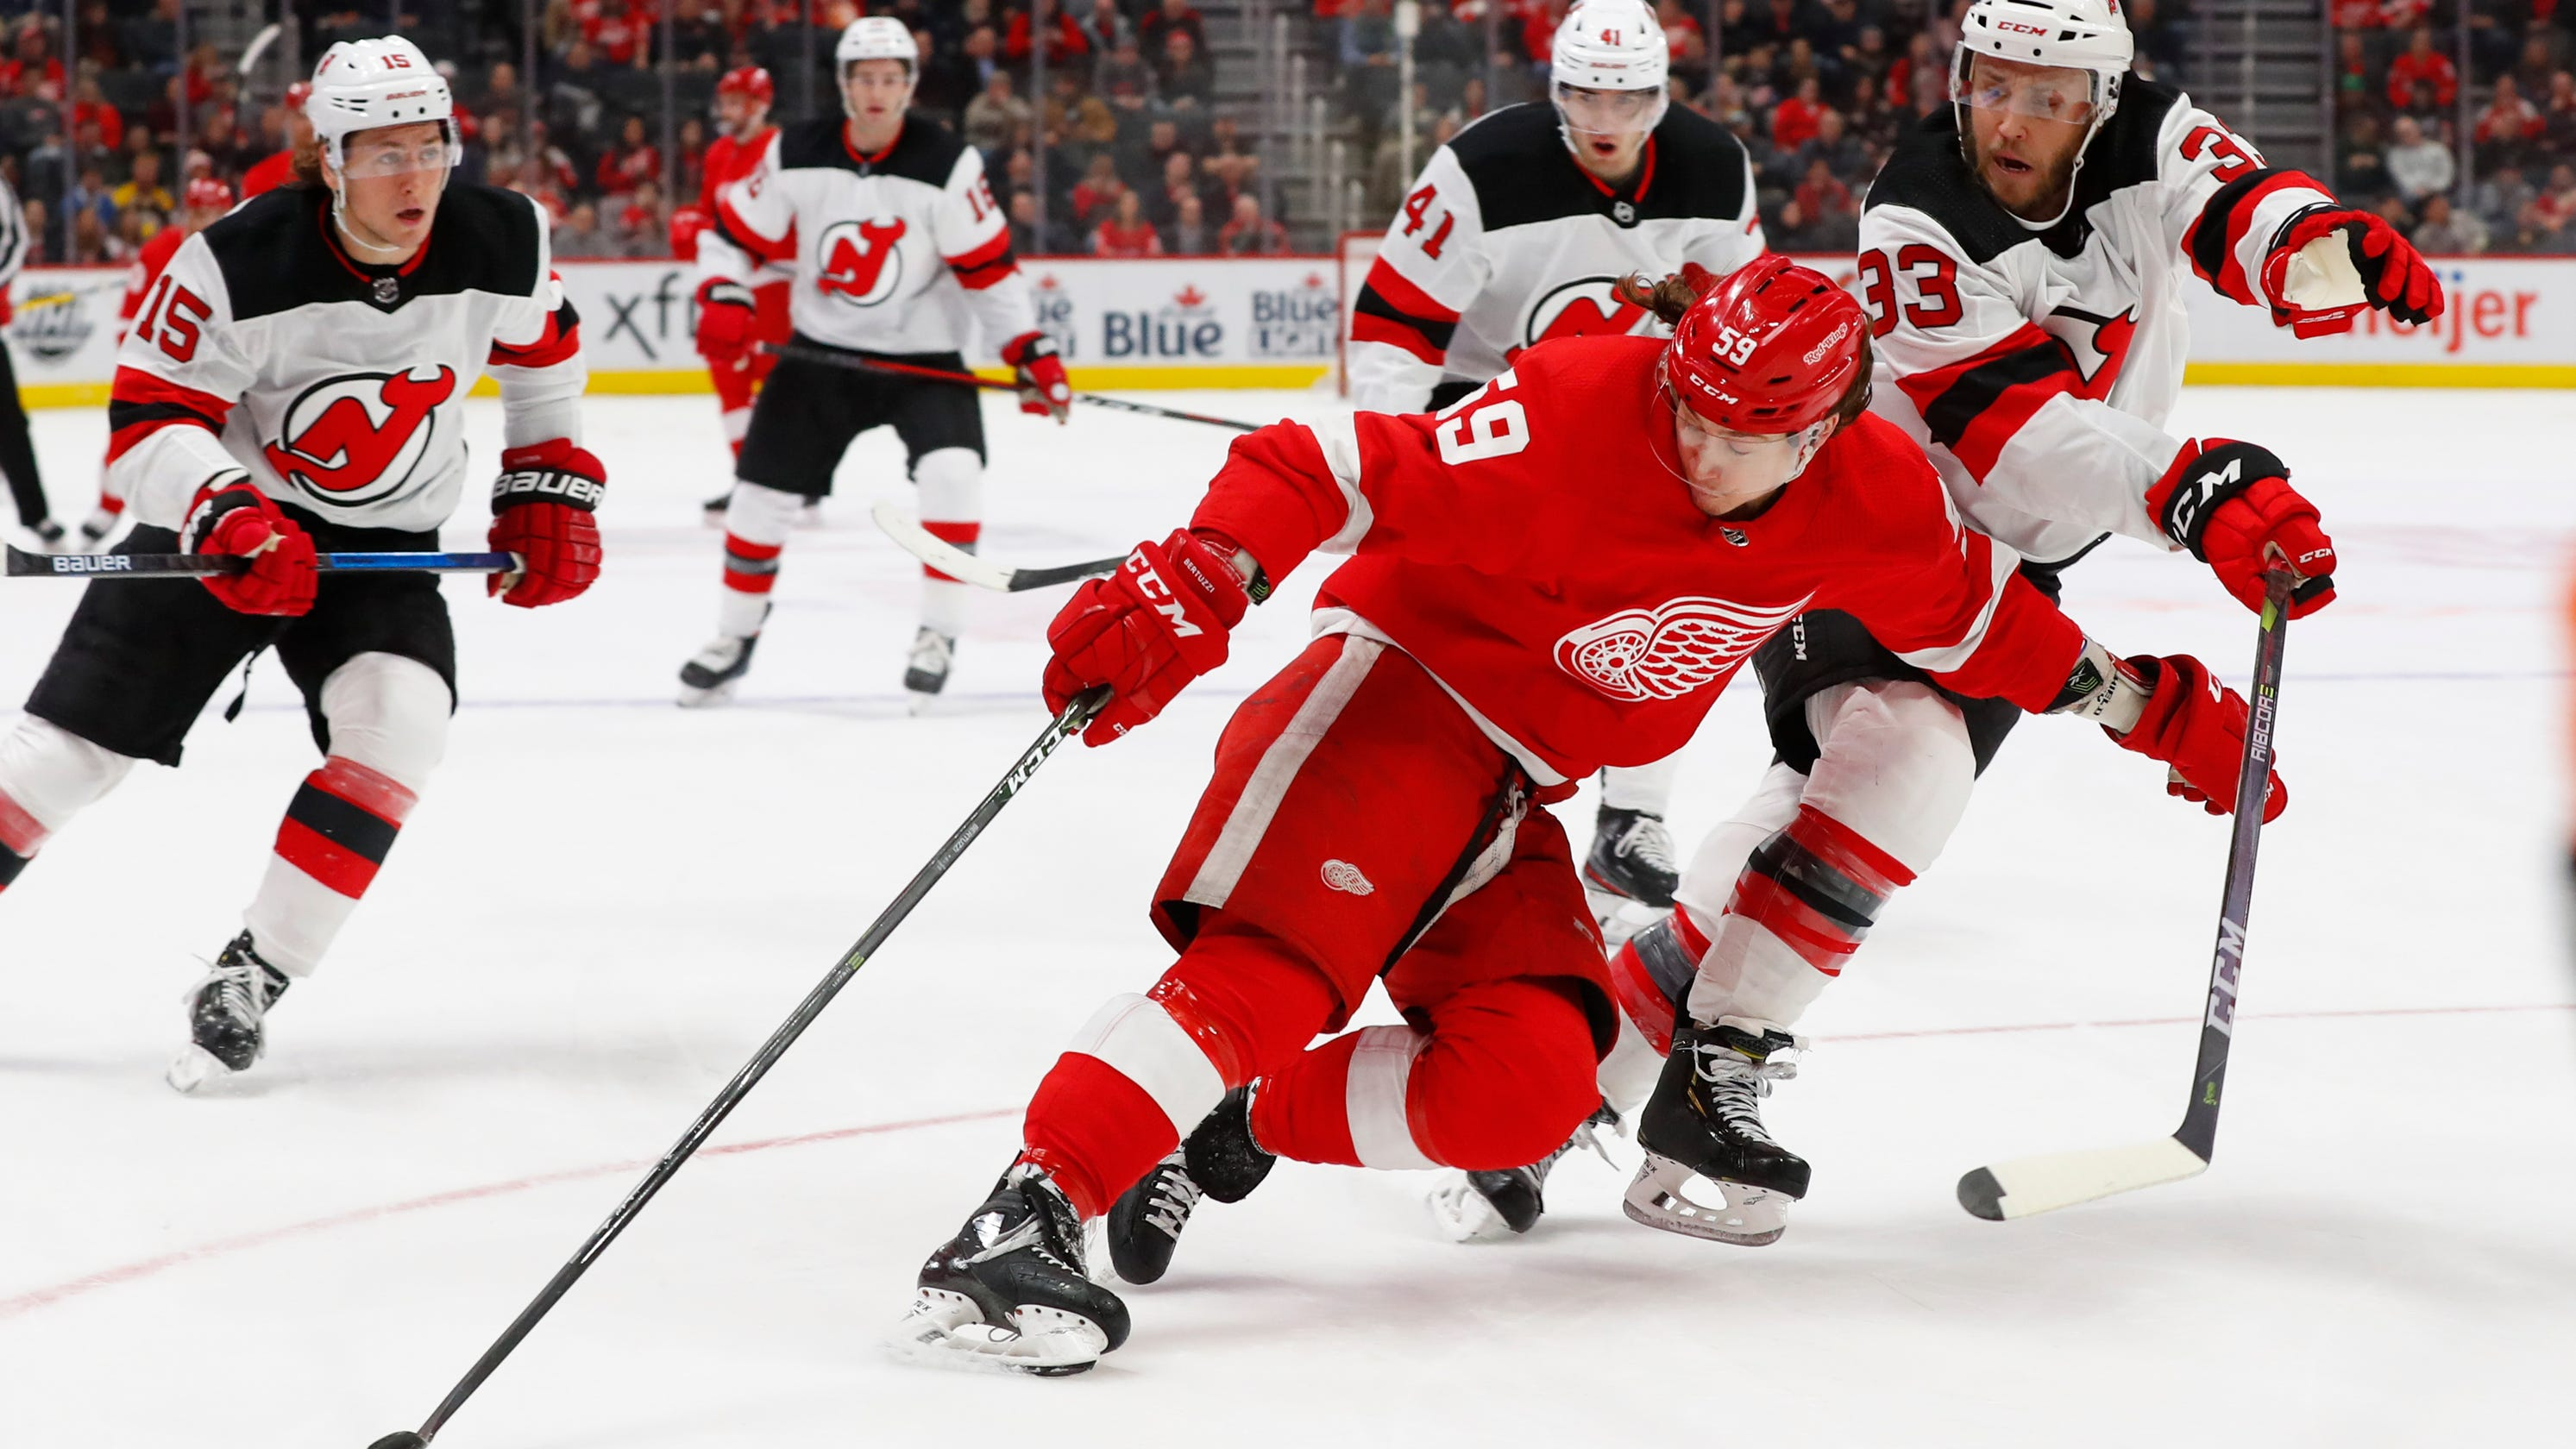 Detroit Red Wings have another tough outing vs. New Jersey Devils, 4-1